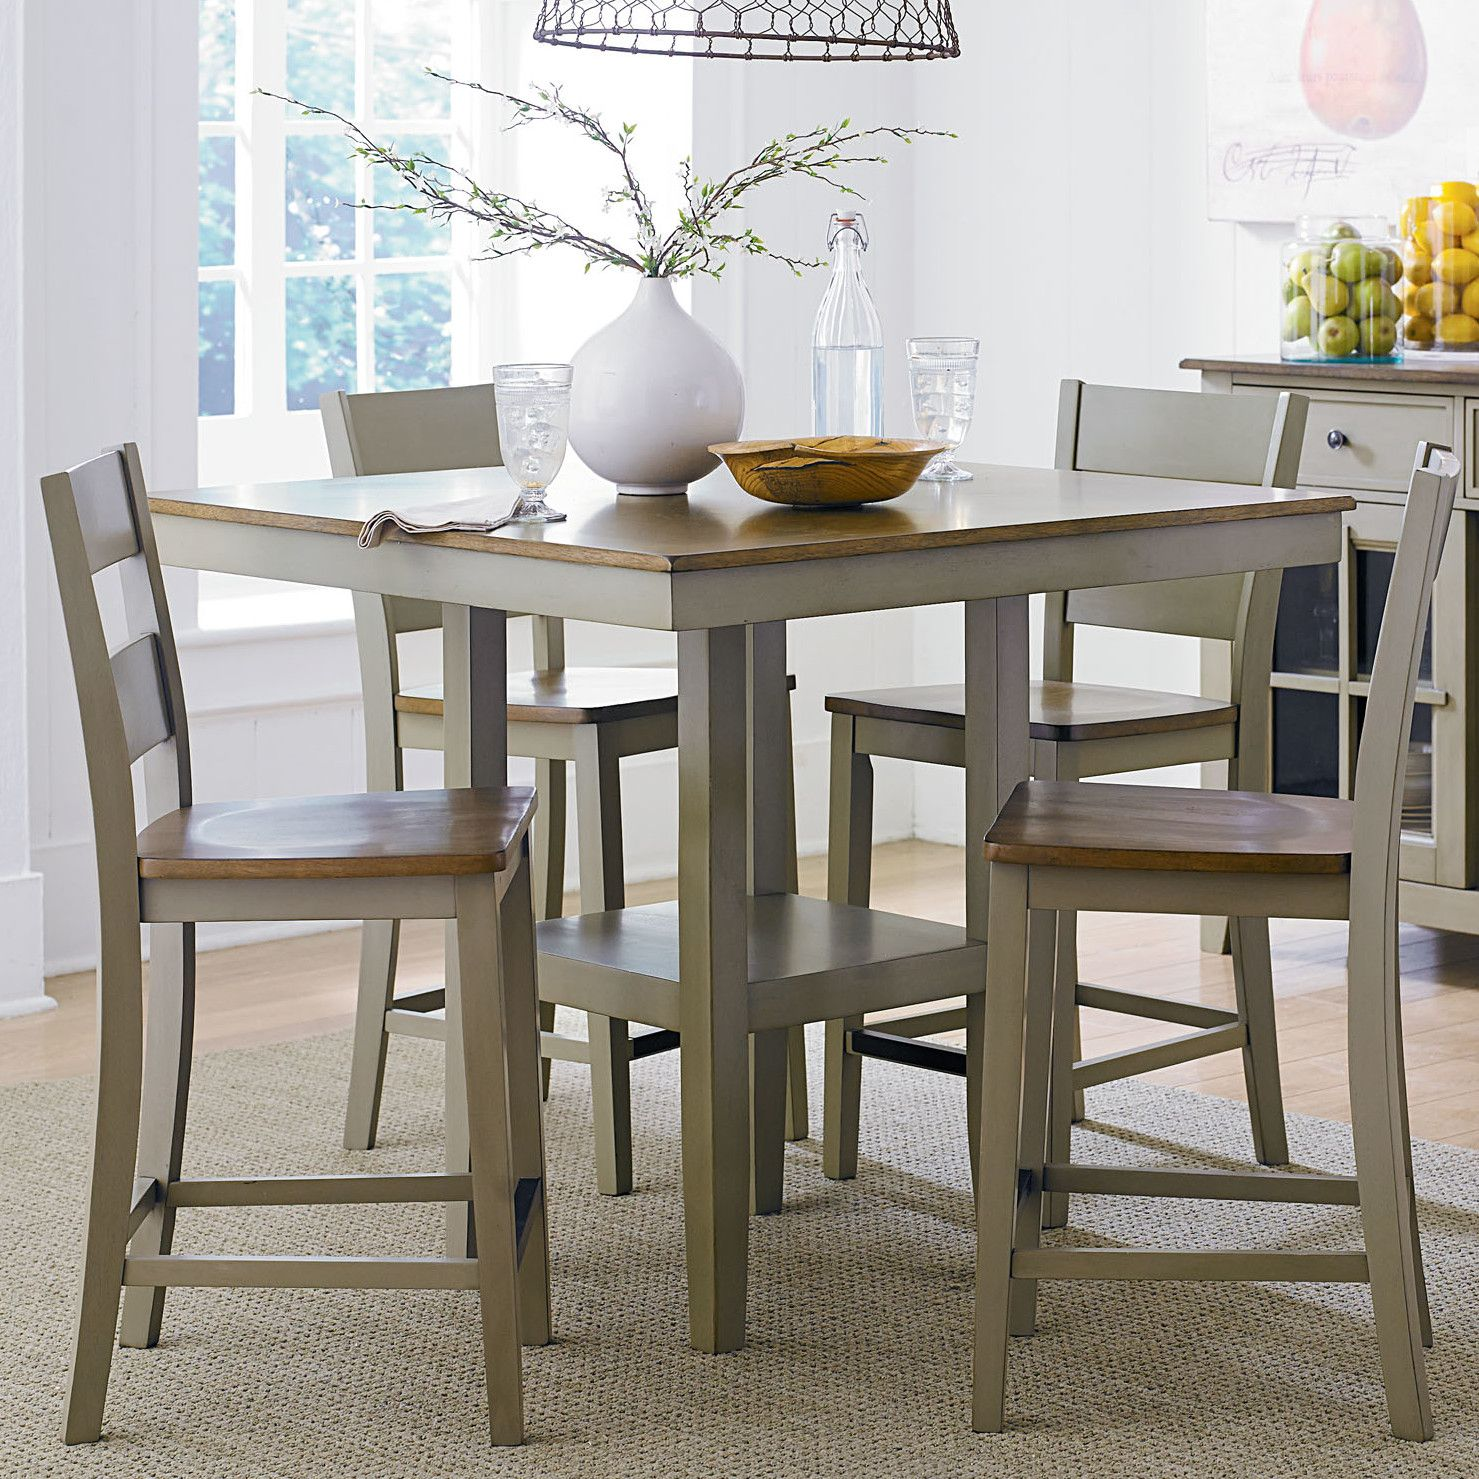 Standard Furniture Pendleton 5 Pieces Counter Height Dining Set